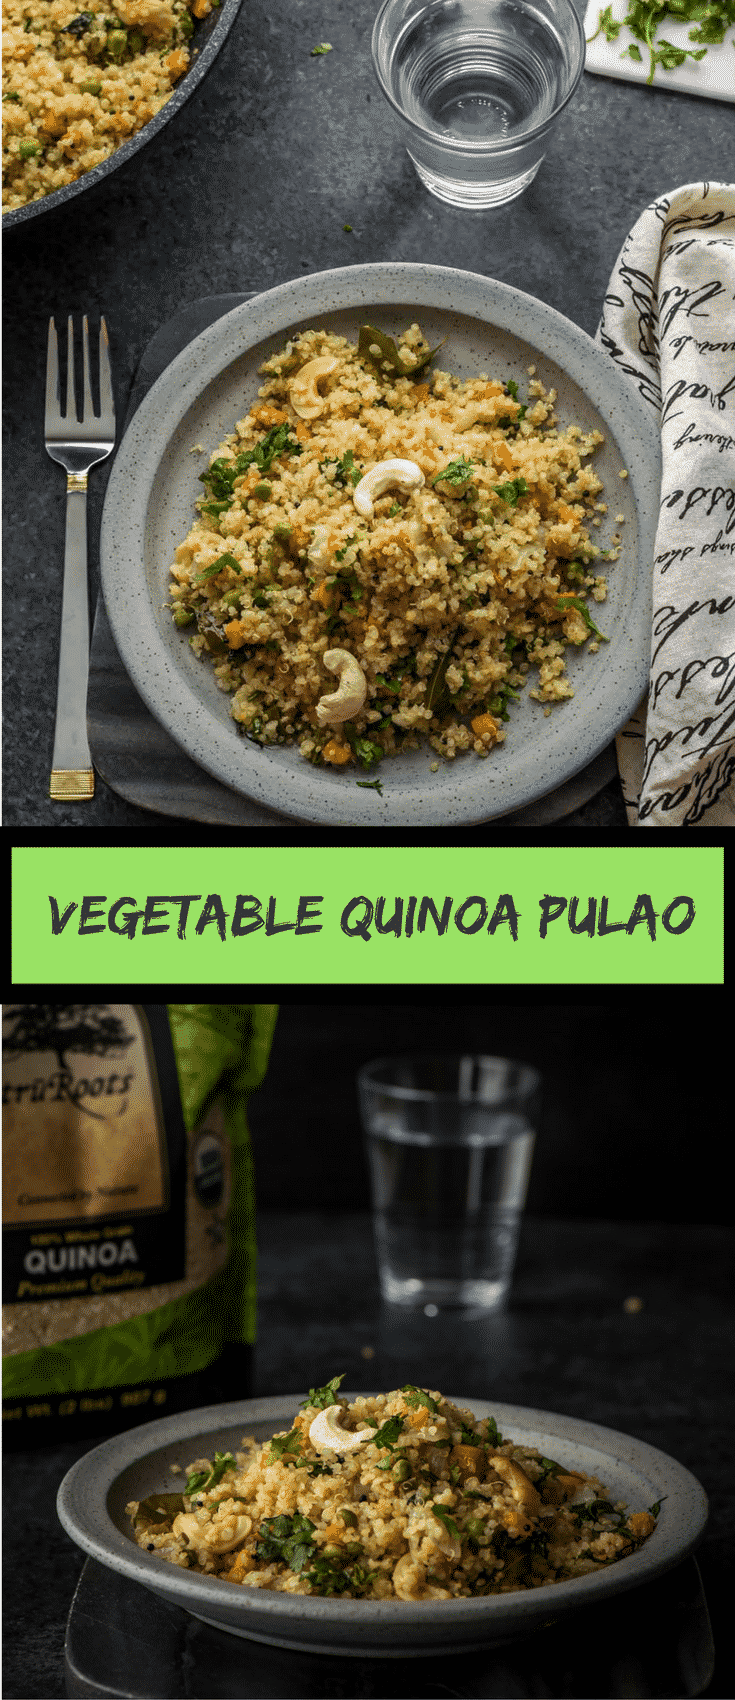 Have you tried Vegetable Quinoa Pulao? Just like vegetable pulao, it is delicious and is a great way to work more veggies into your meals with quinoa – a healthier substitute for rice. This post is sponsored by truRoots.